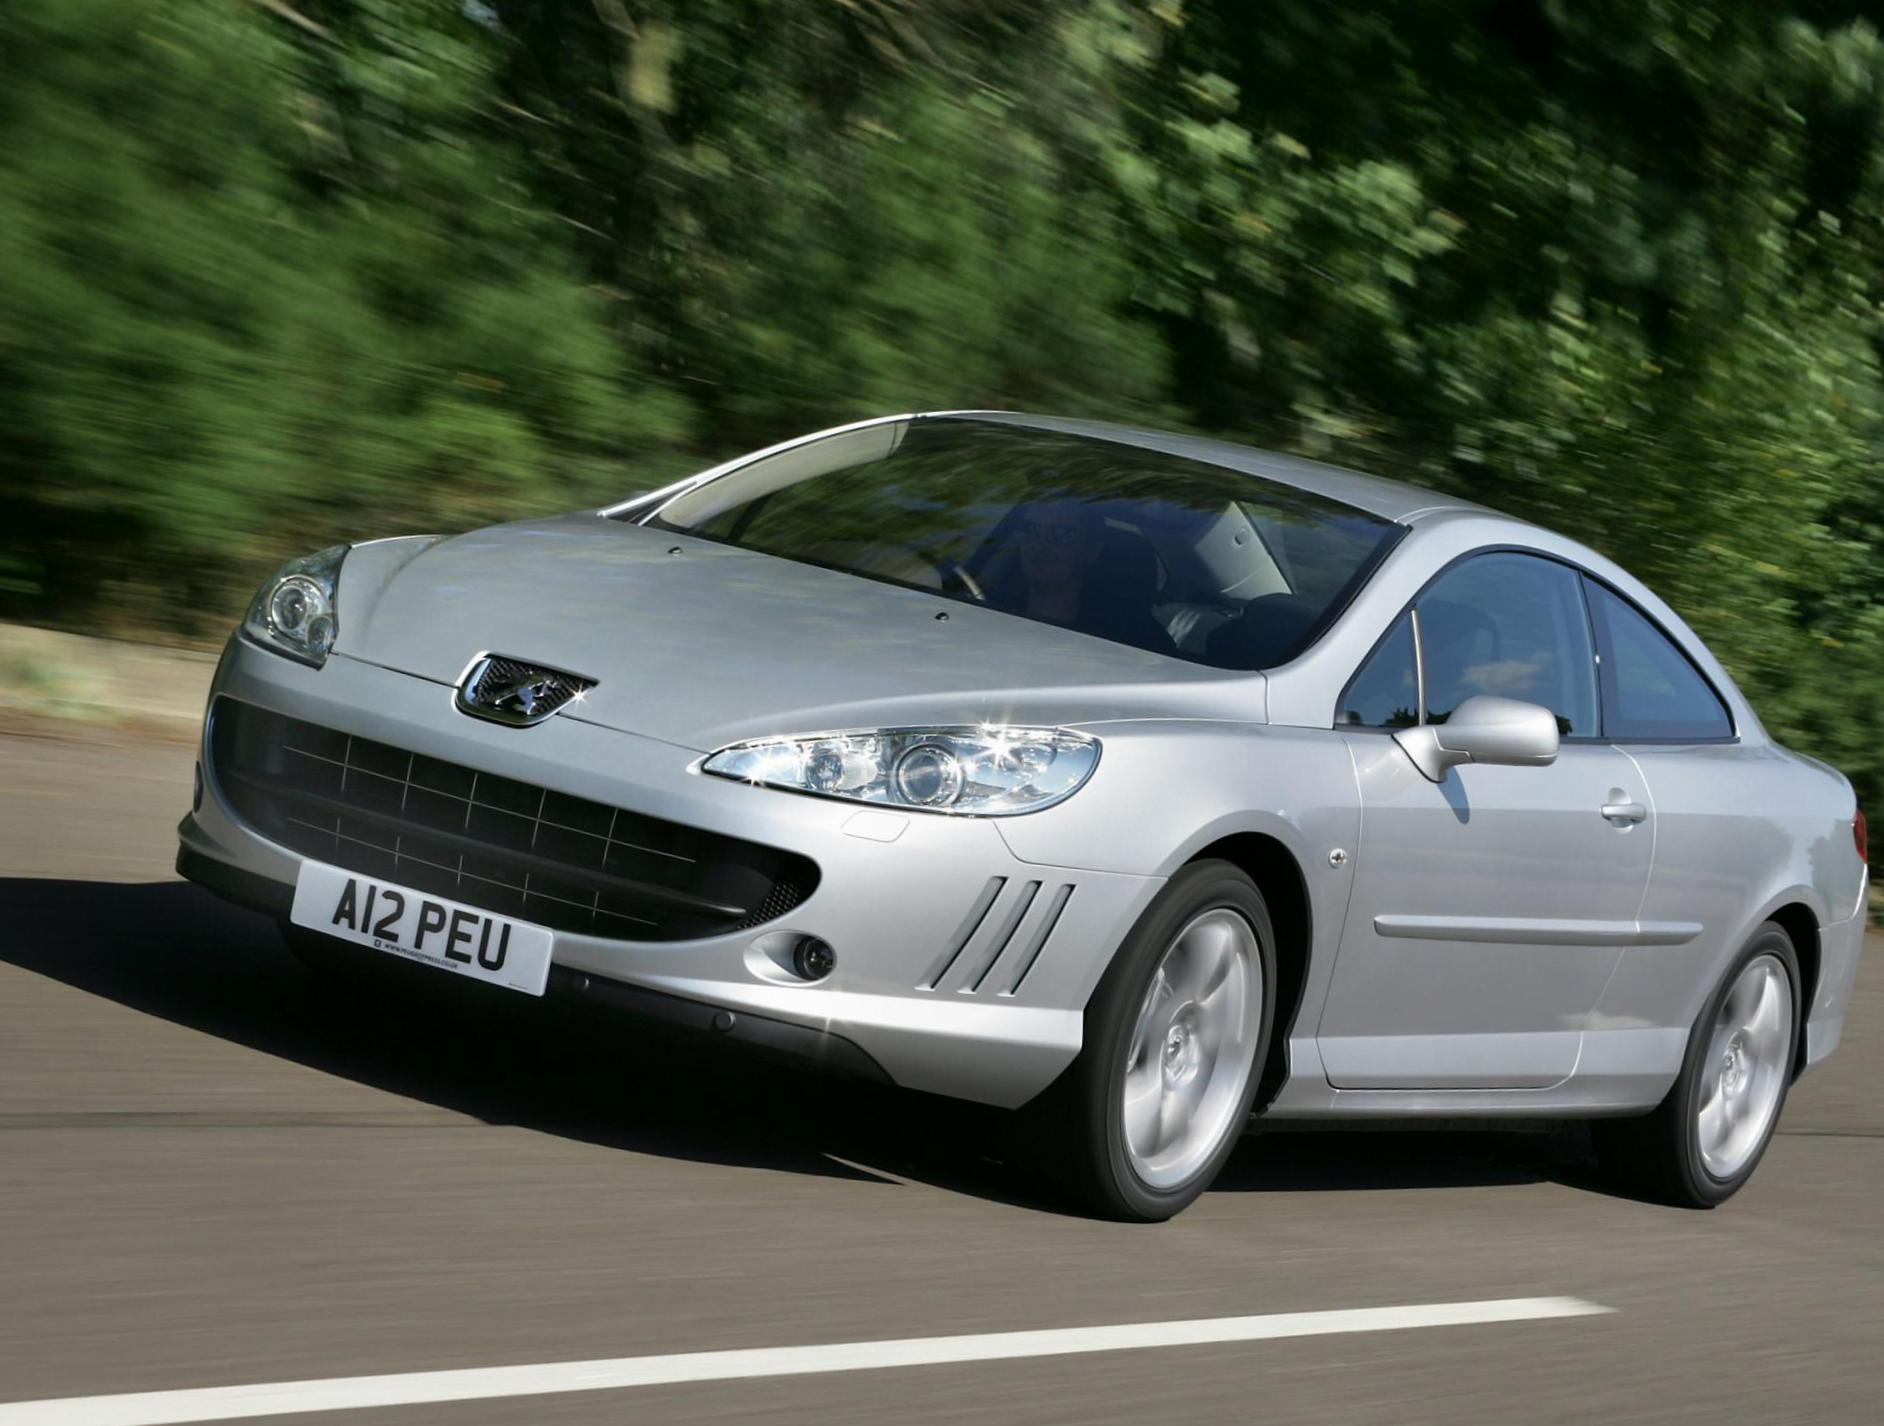 Coupe Peugeot Peugeot 407 Coupe Photos And Specs Photo 407 Coupe Peugeot Specs